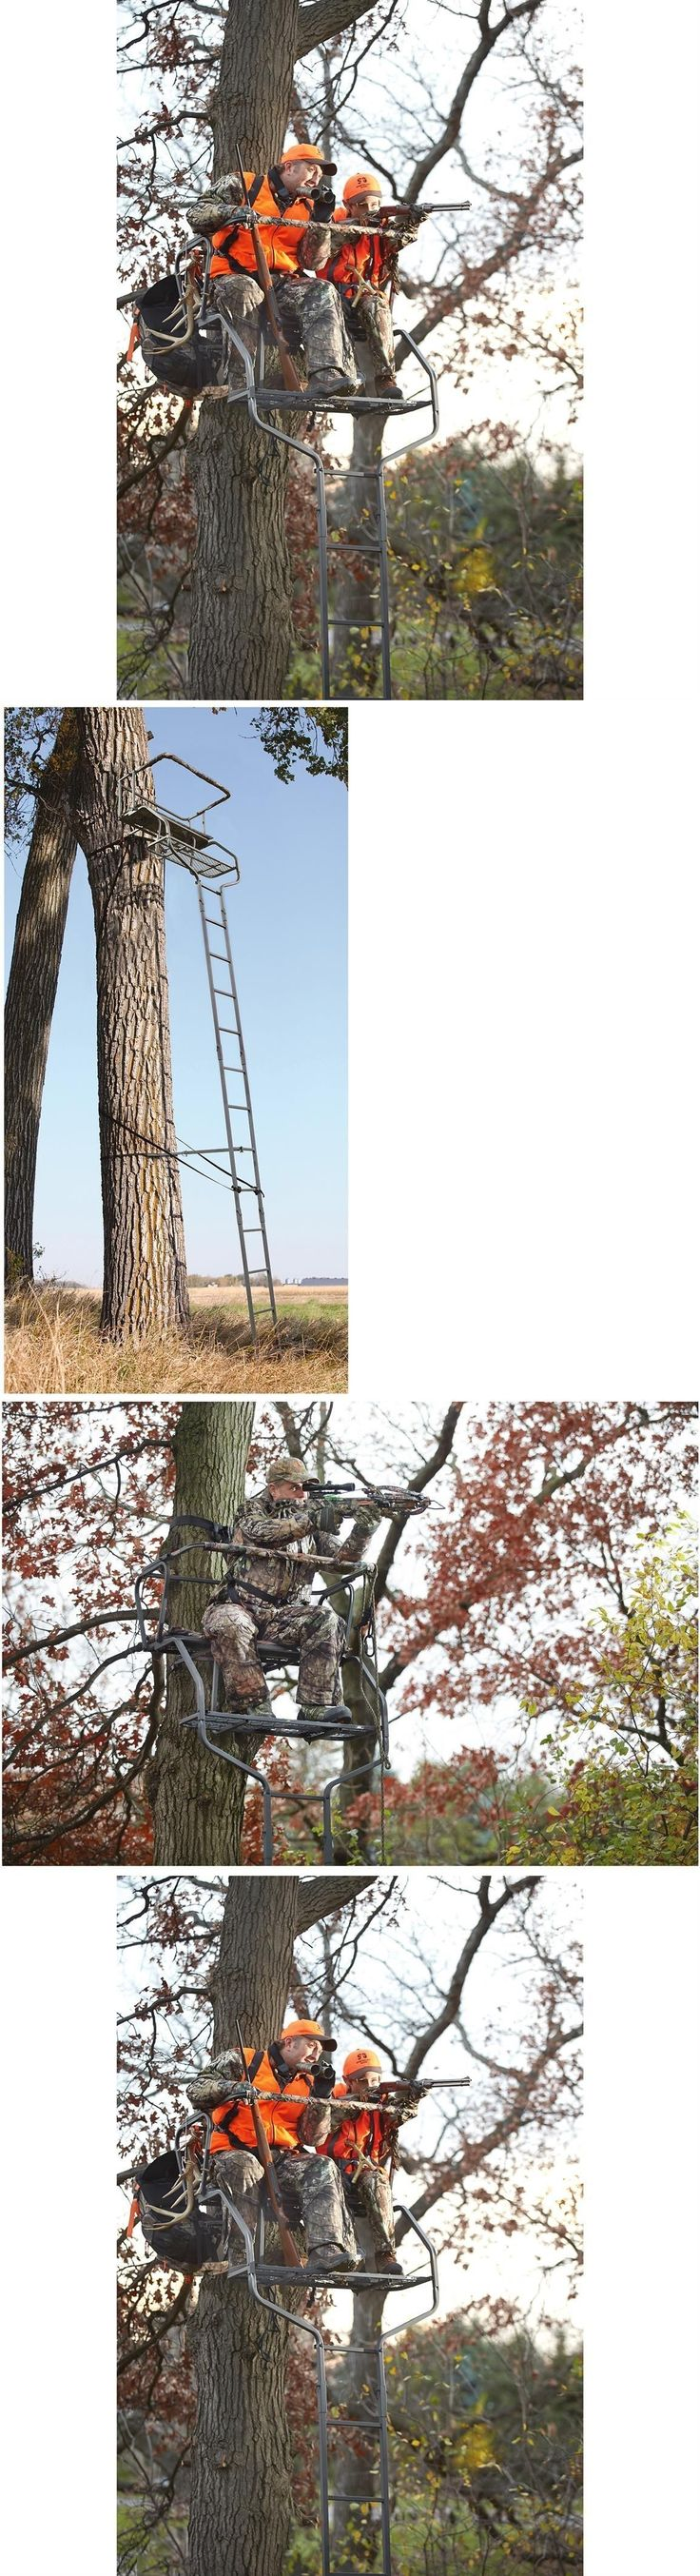 Tree Stands 52508: 2 Man Ladder Tree Stand For Deer Hunting Bow 18 Deluxe Buddy Platform -> BUY IT NOW ONLY: $137.0 on eBay!